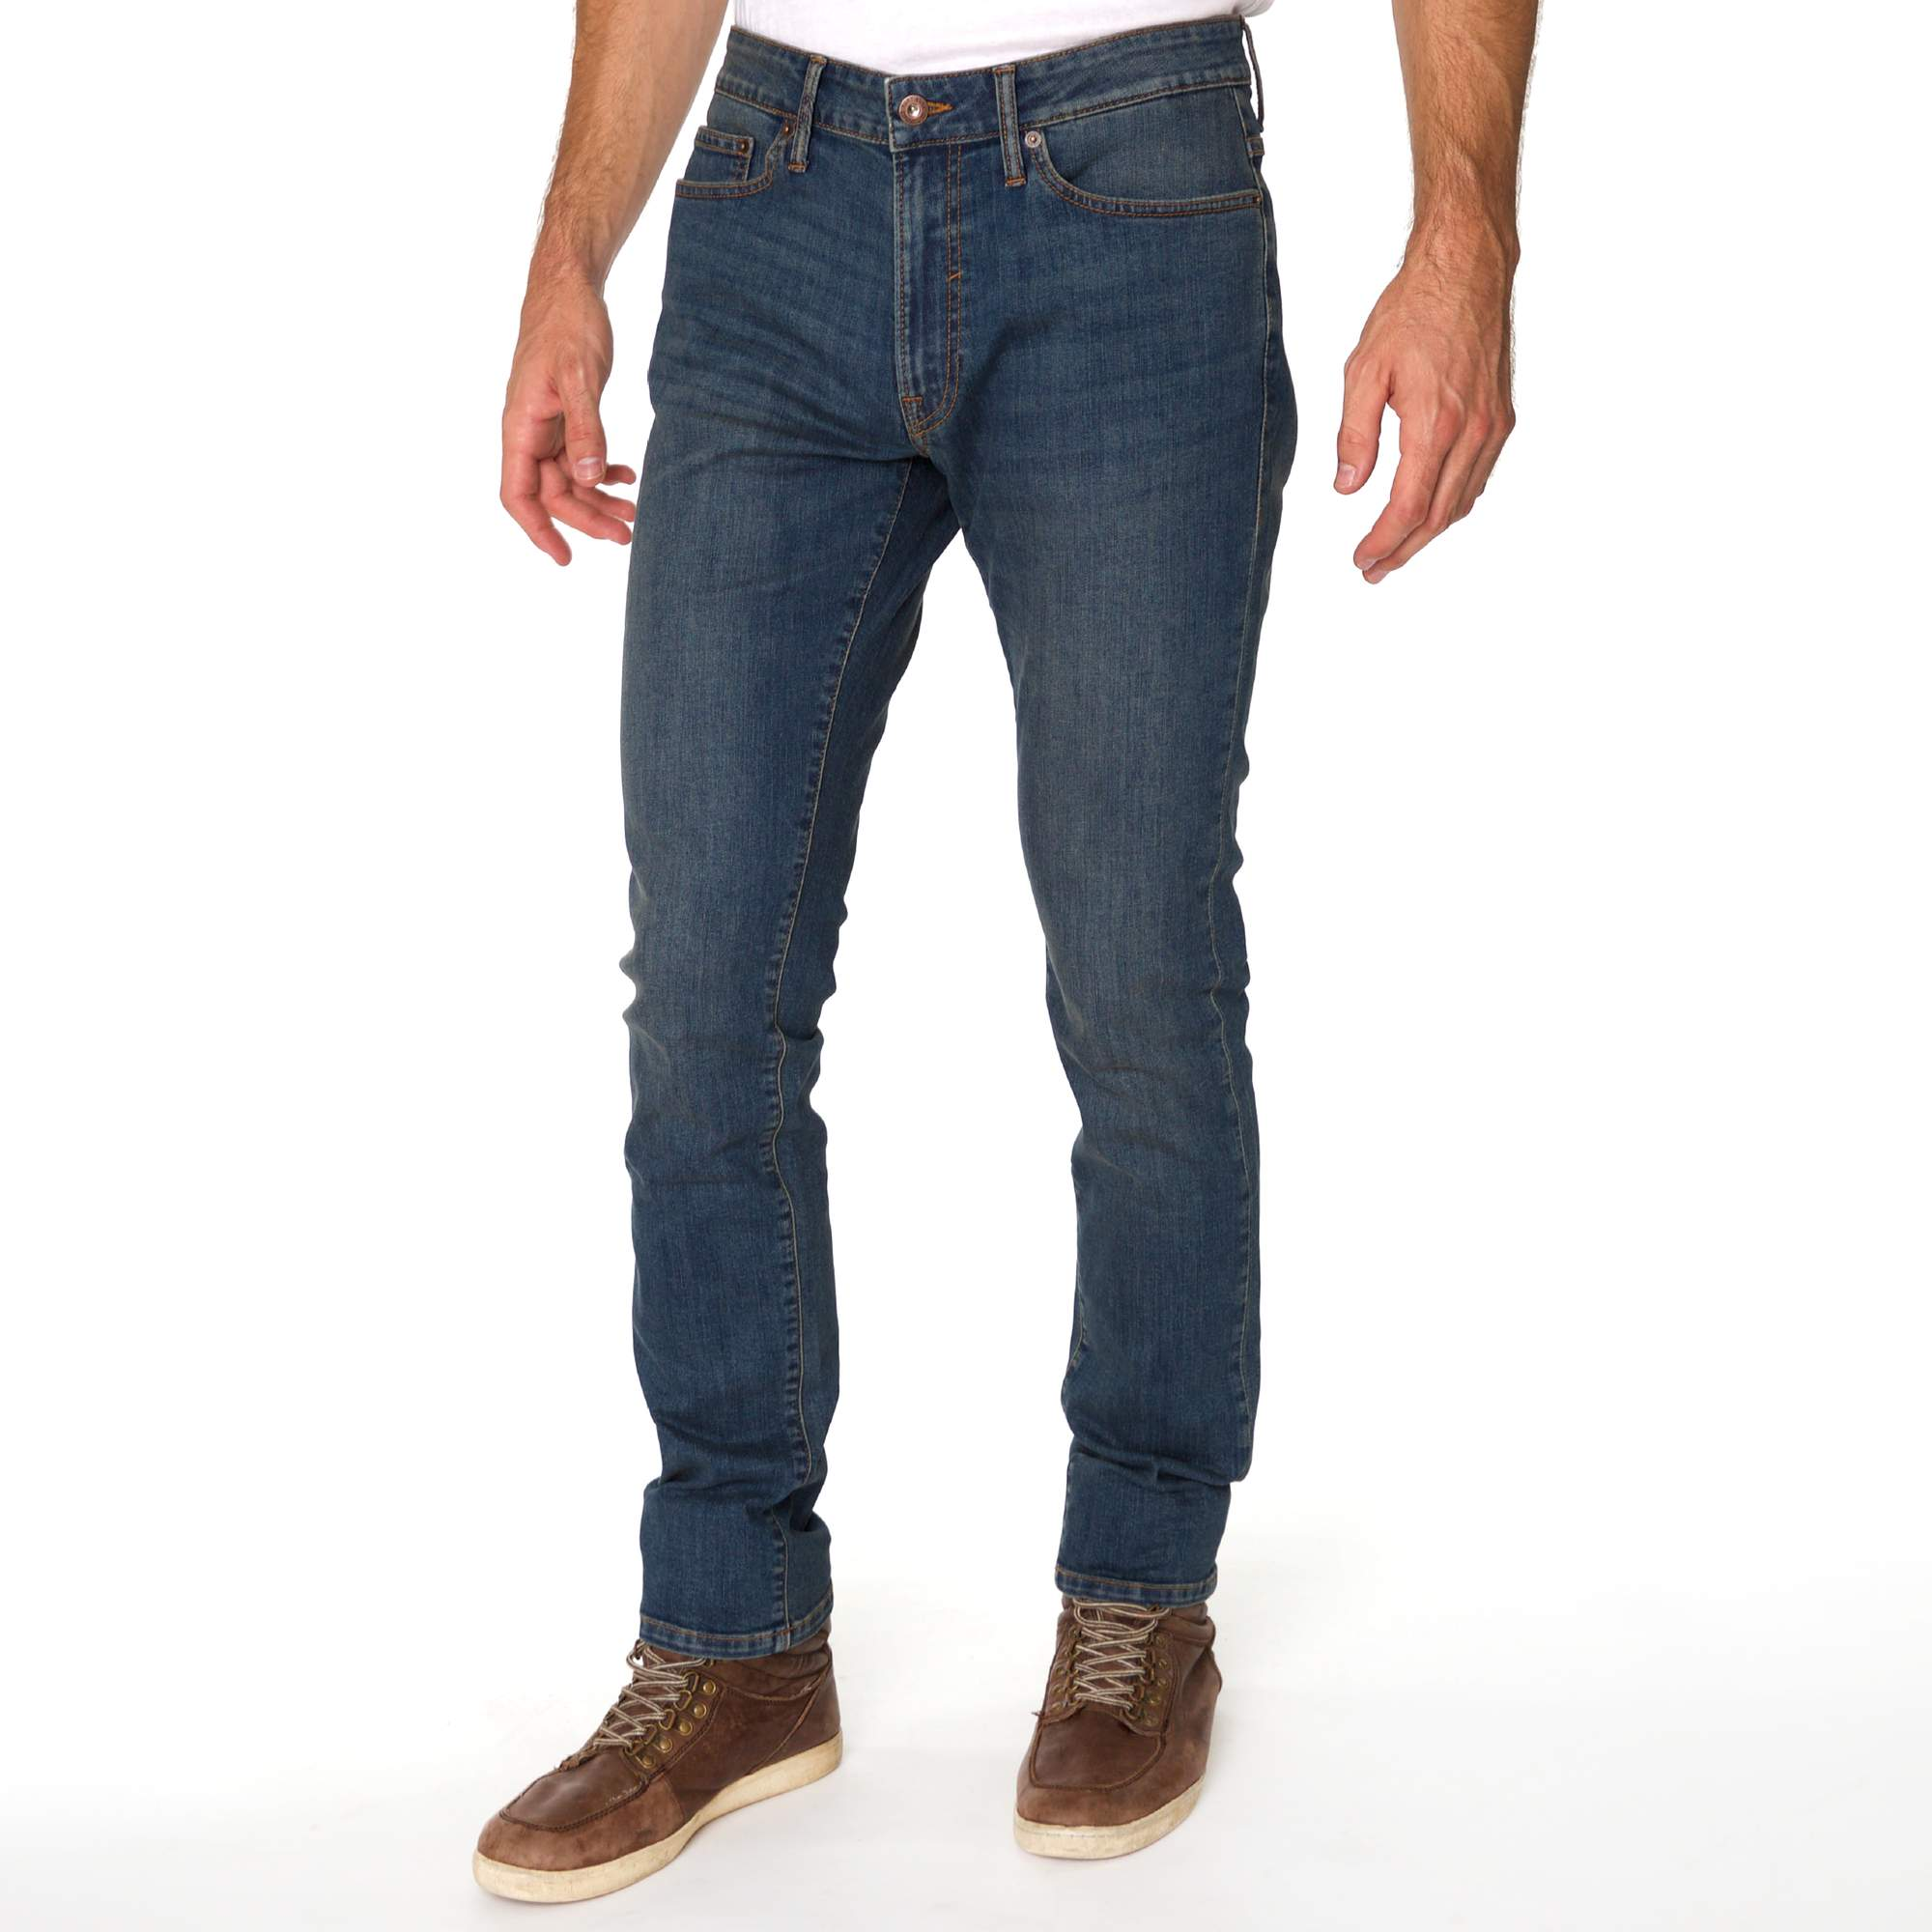 Men's Slim Fit Jeans with Stretch